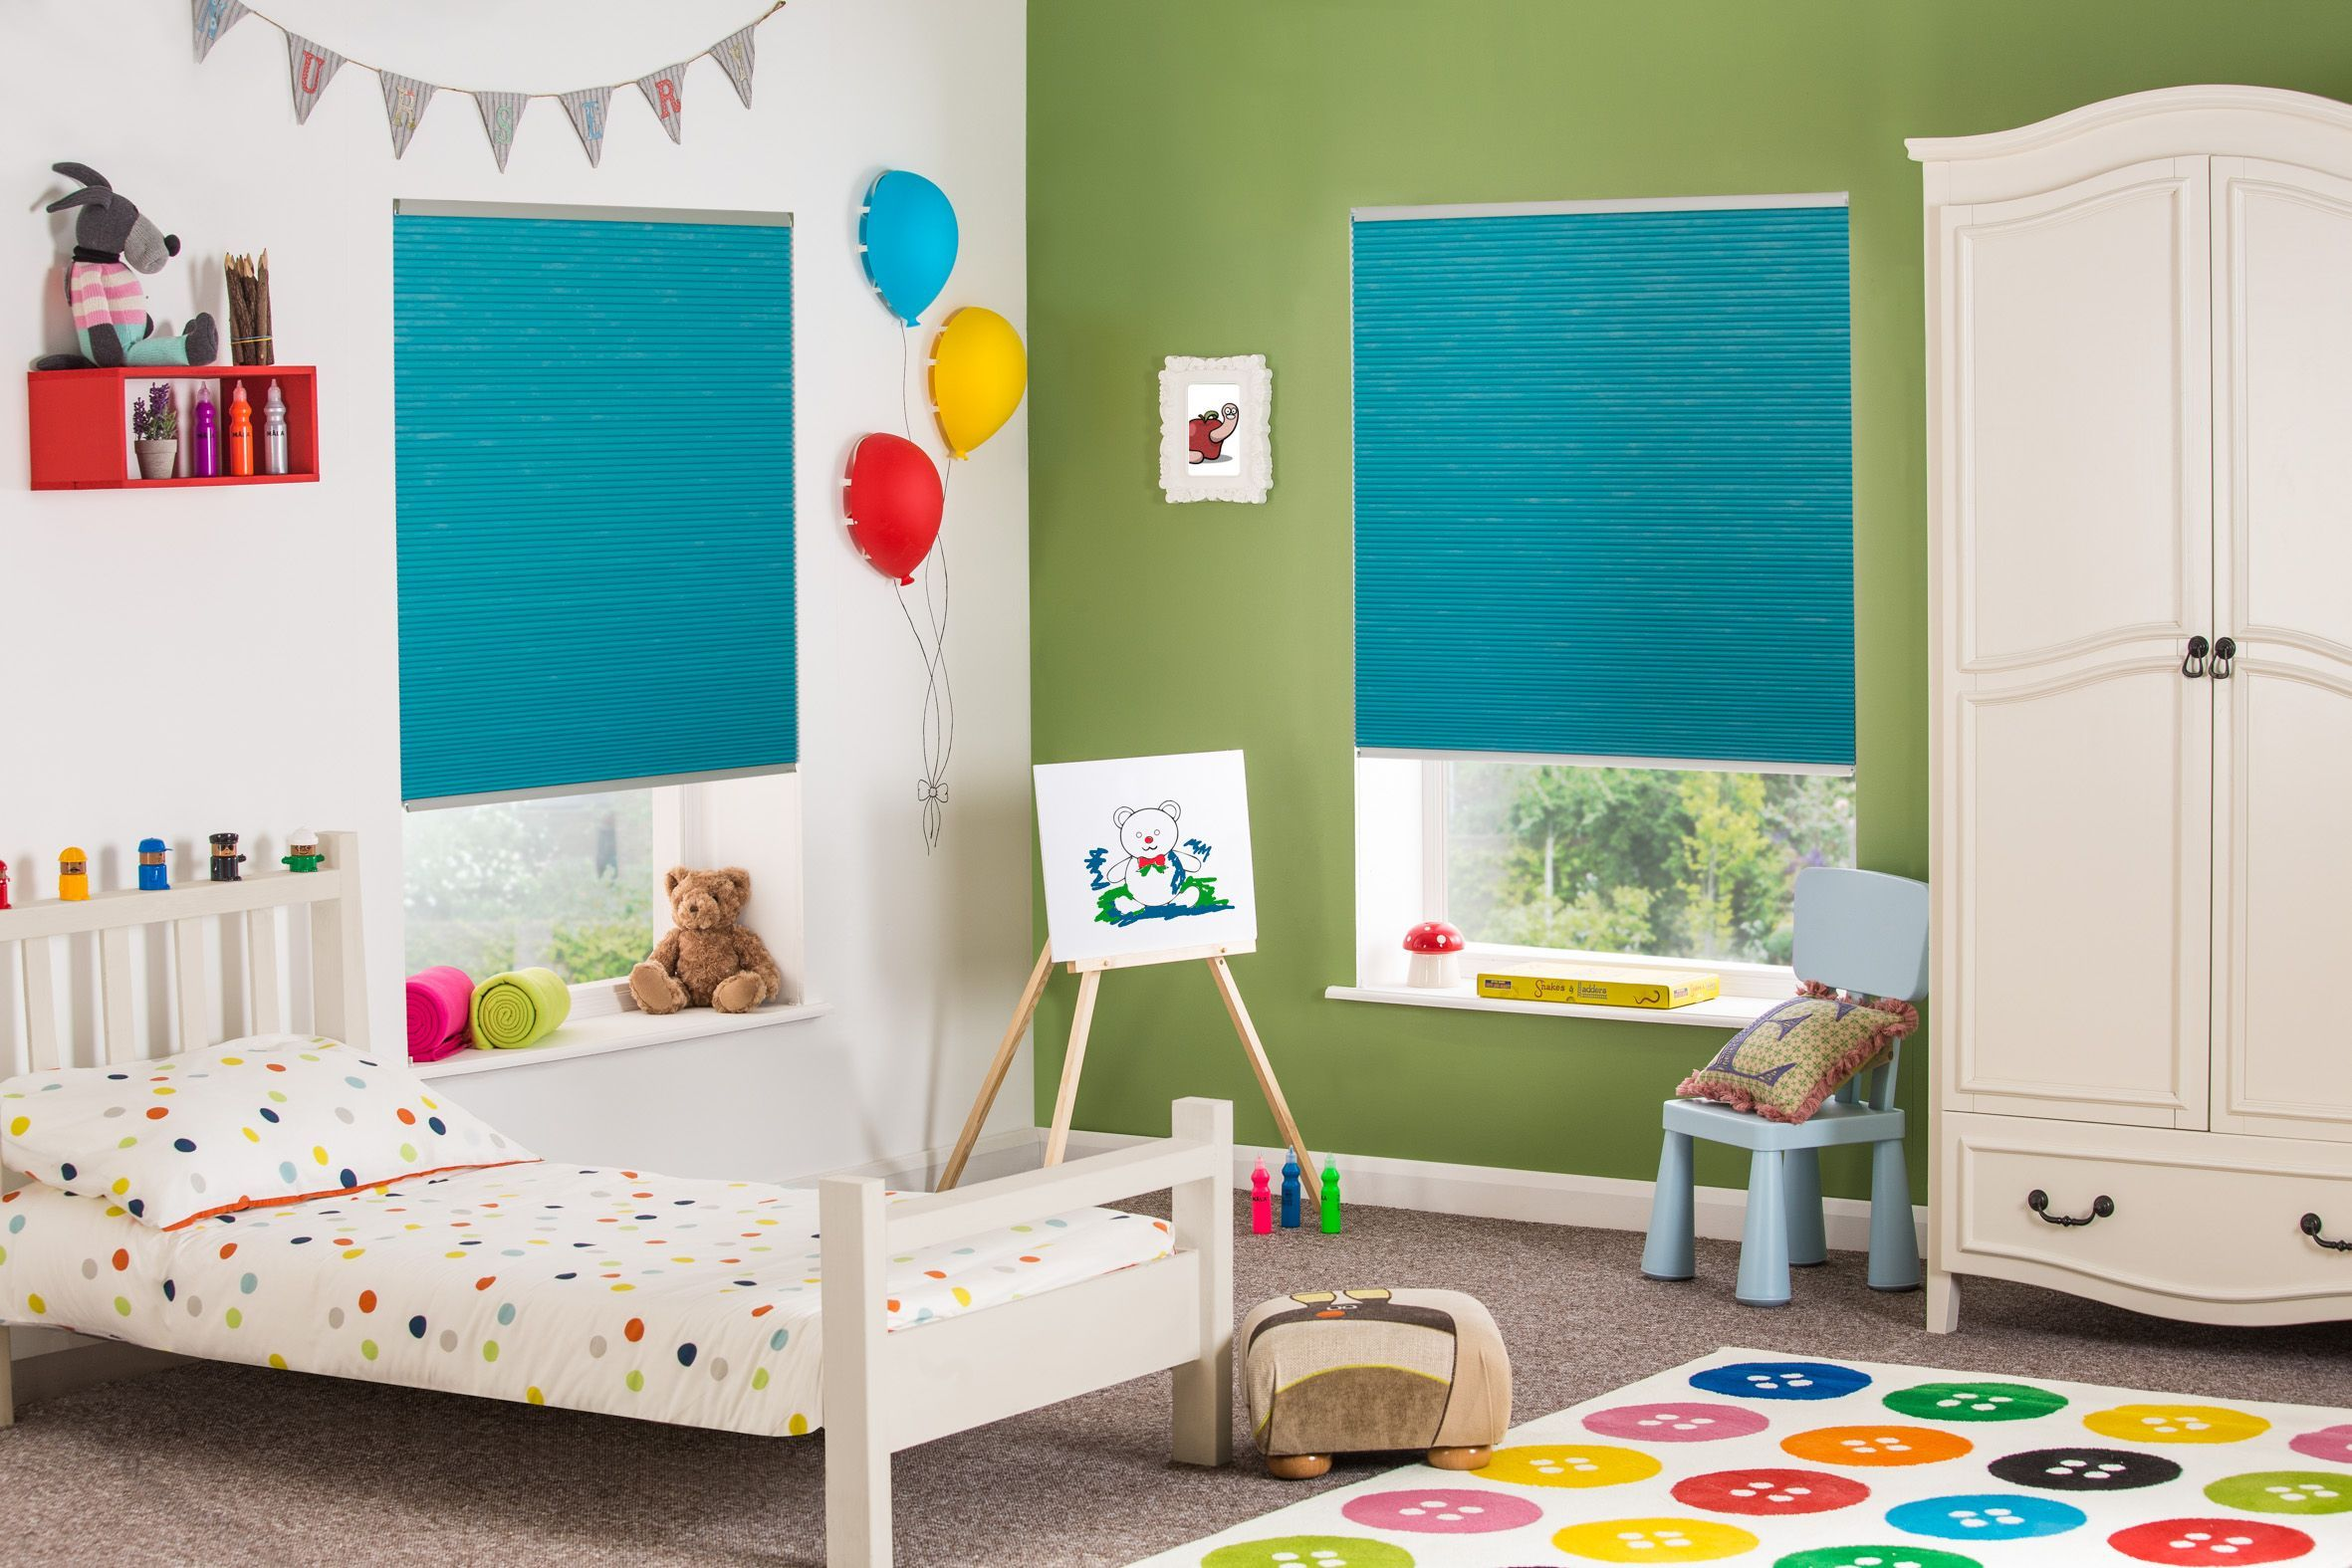 Hive Cellular Blinds From Style Studio Turquoise Blinds Kids Bedroom